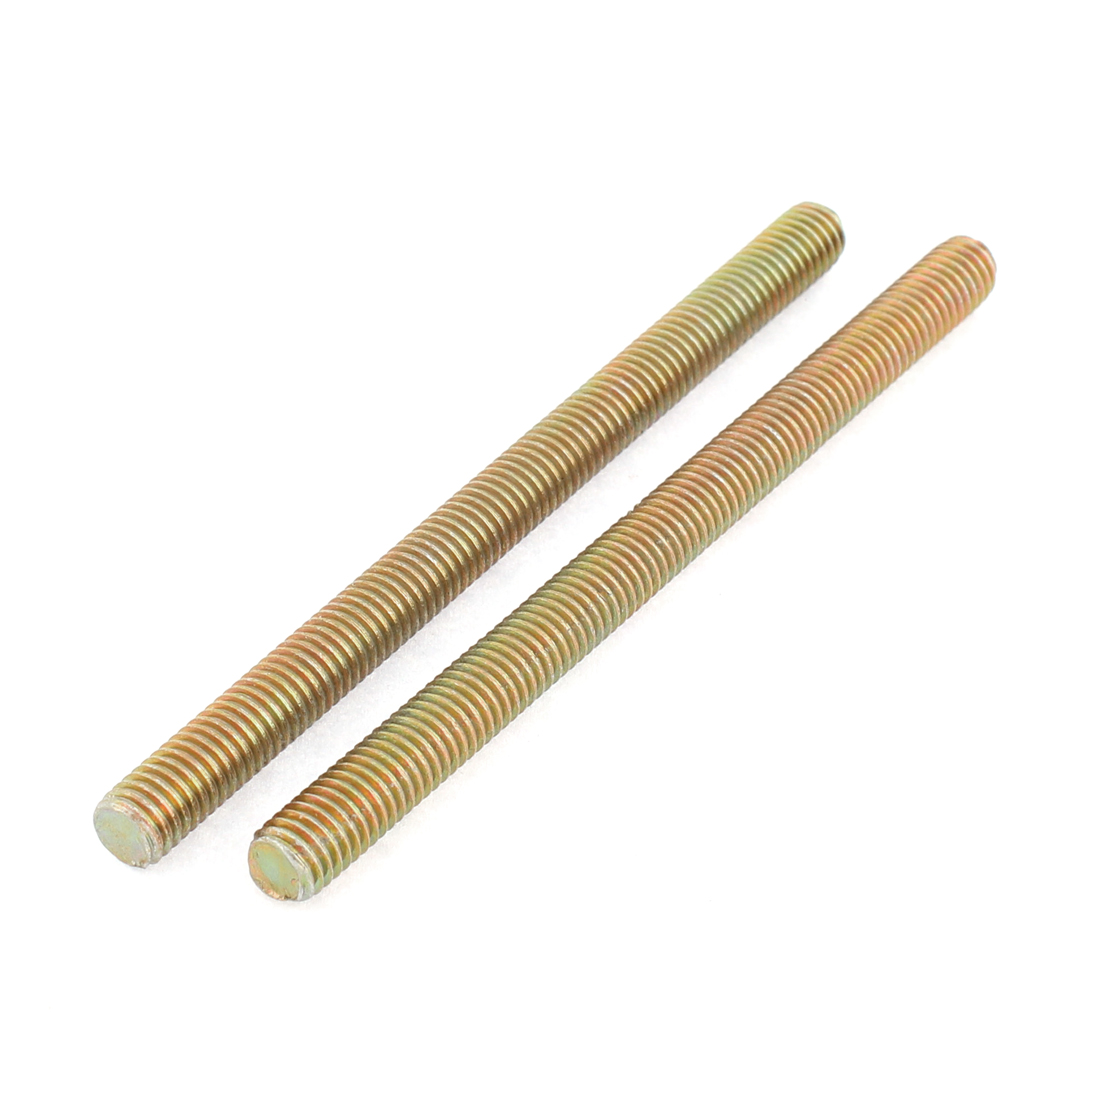 1.25mm Pitch M8 x 110mm Male Full-Threaded Rod Bar Bronze Tone 2 Pcs